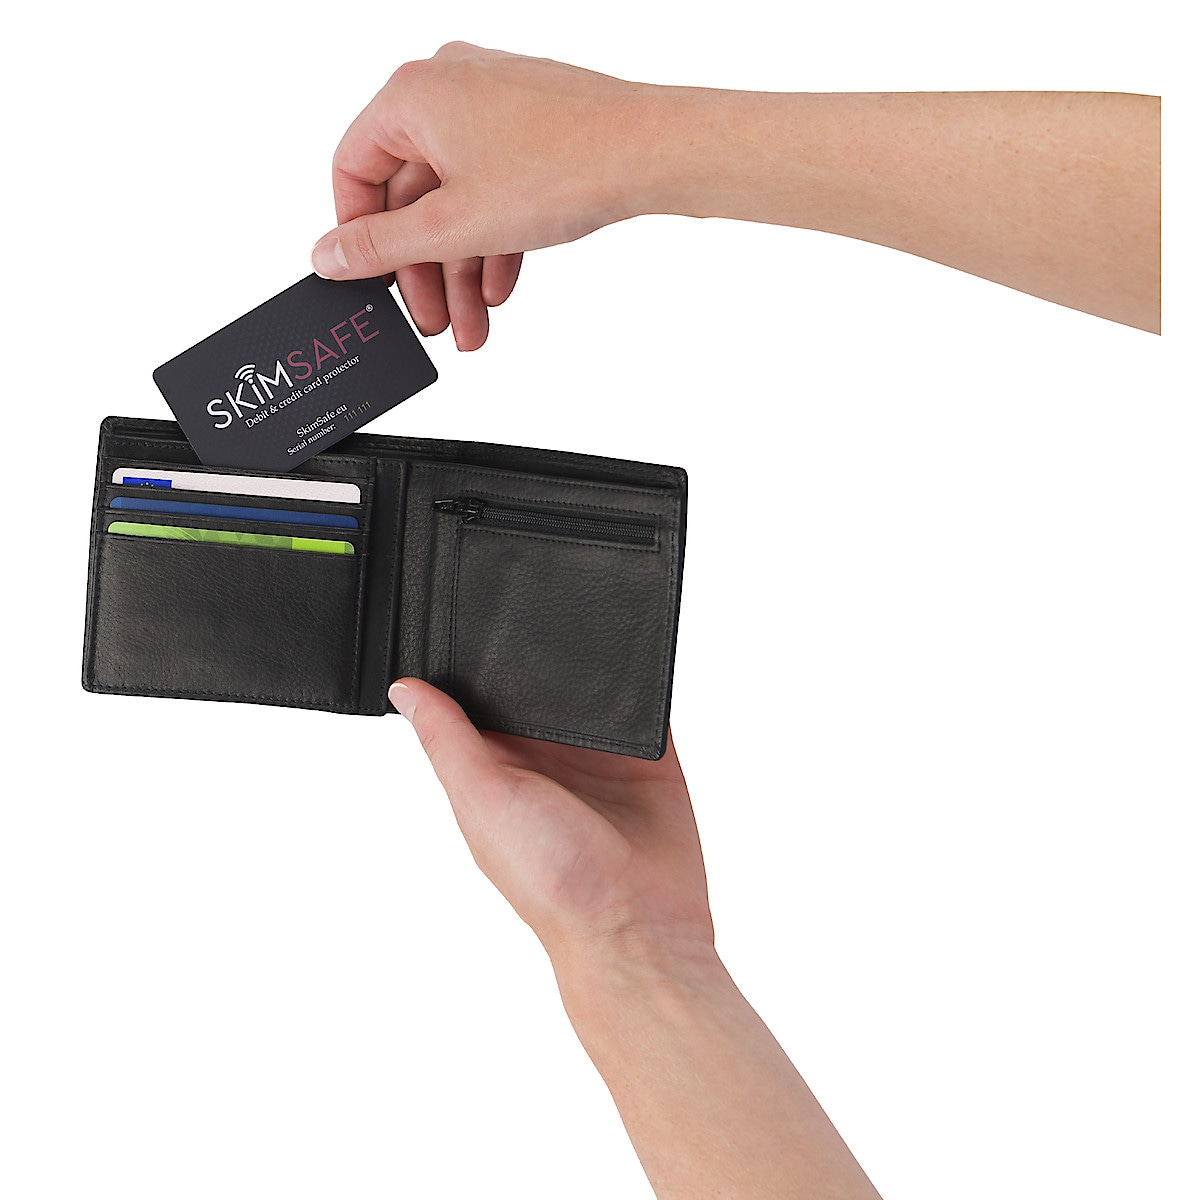 SkimSafe Debit and Credit Card Protector